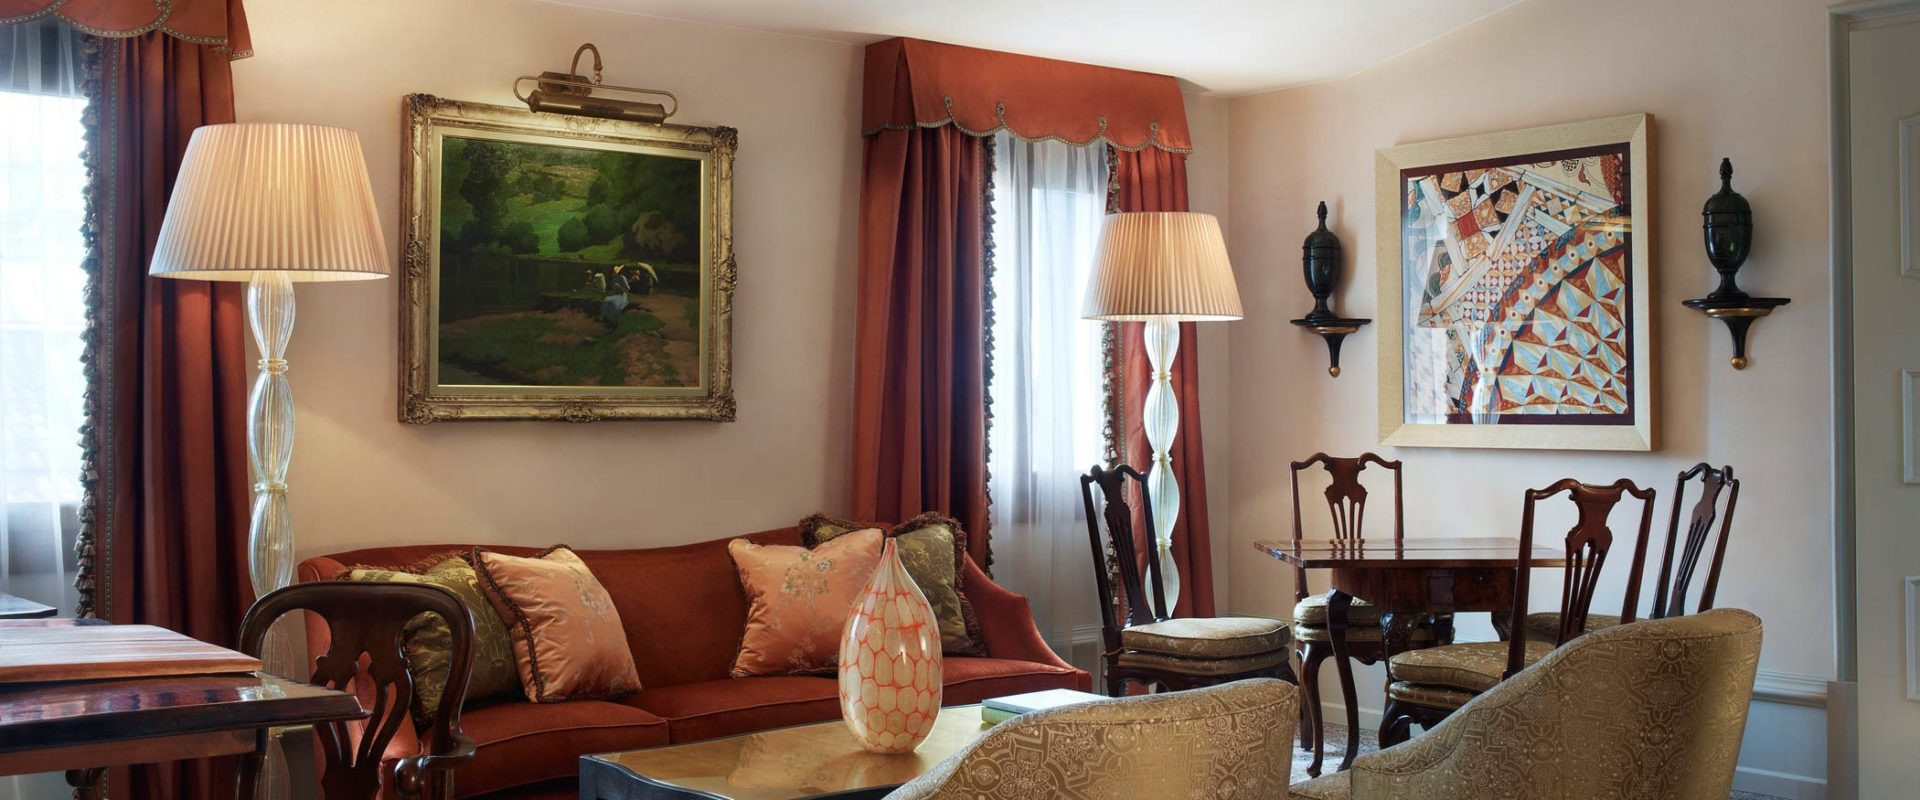 The-Griitti-Palace-Venice-Serenissima-Suite